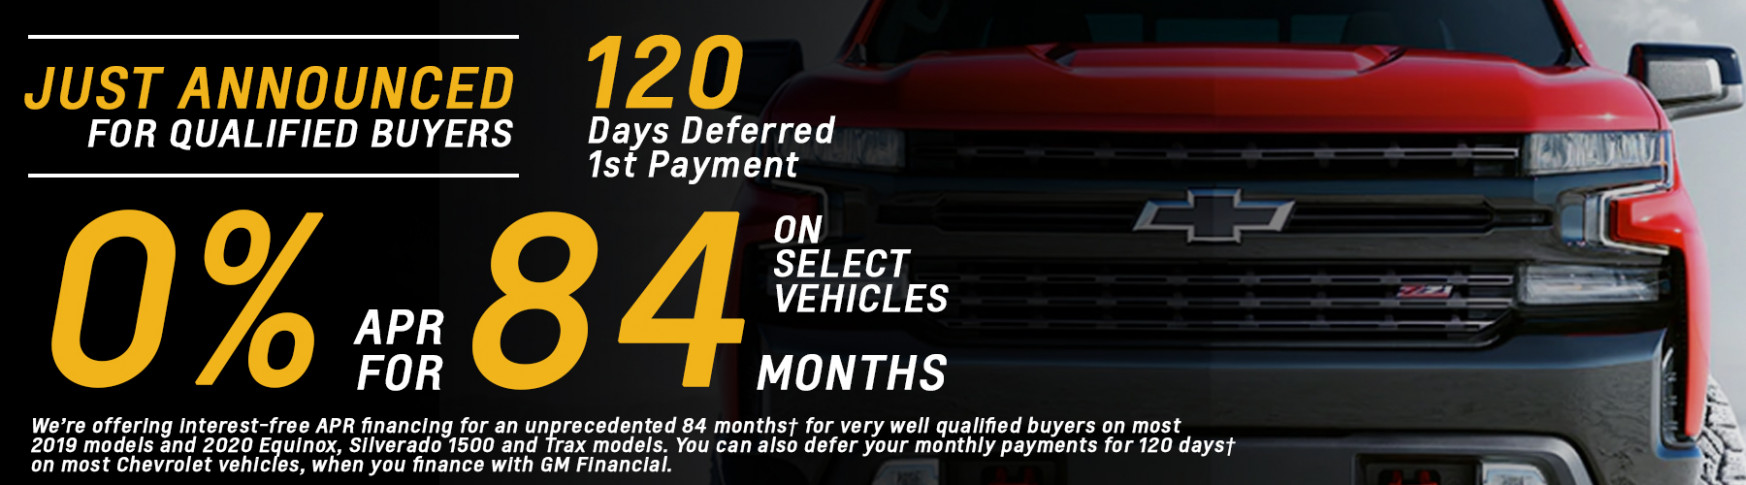 Best New Chevy Lease Offers MA & Lowest Prices | Quirk Chevy - chevrolet zero percent financing 2020